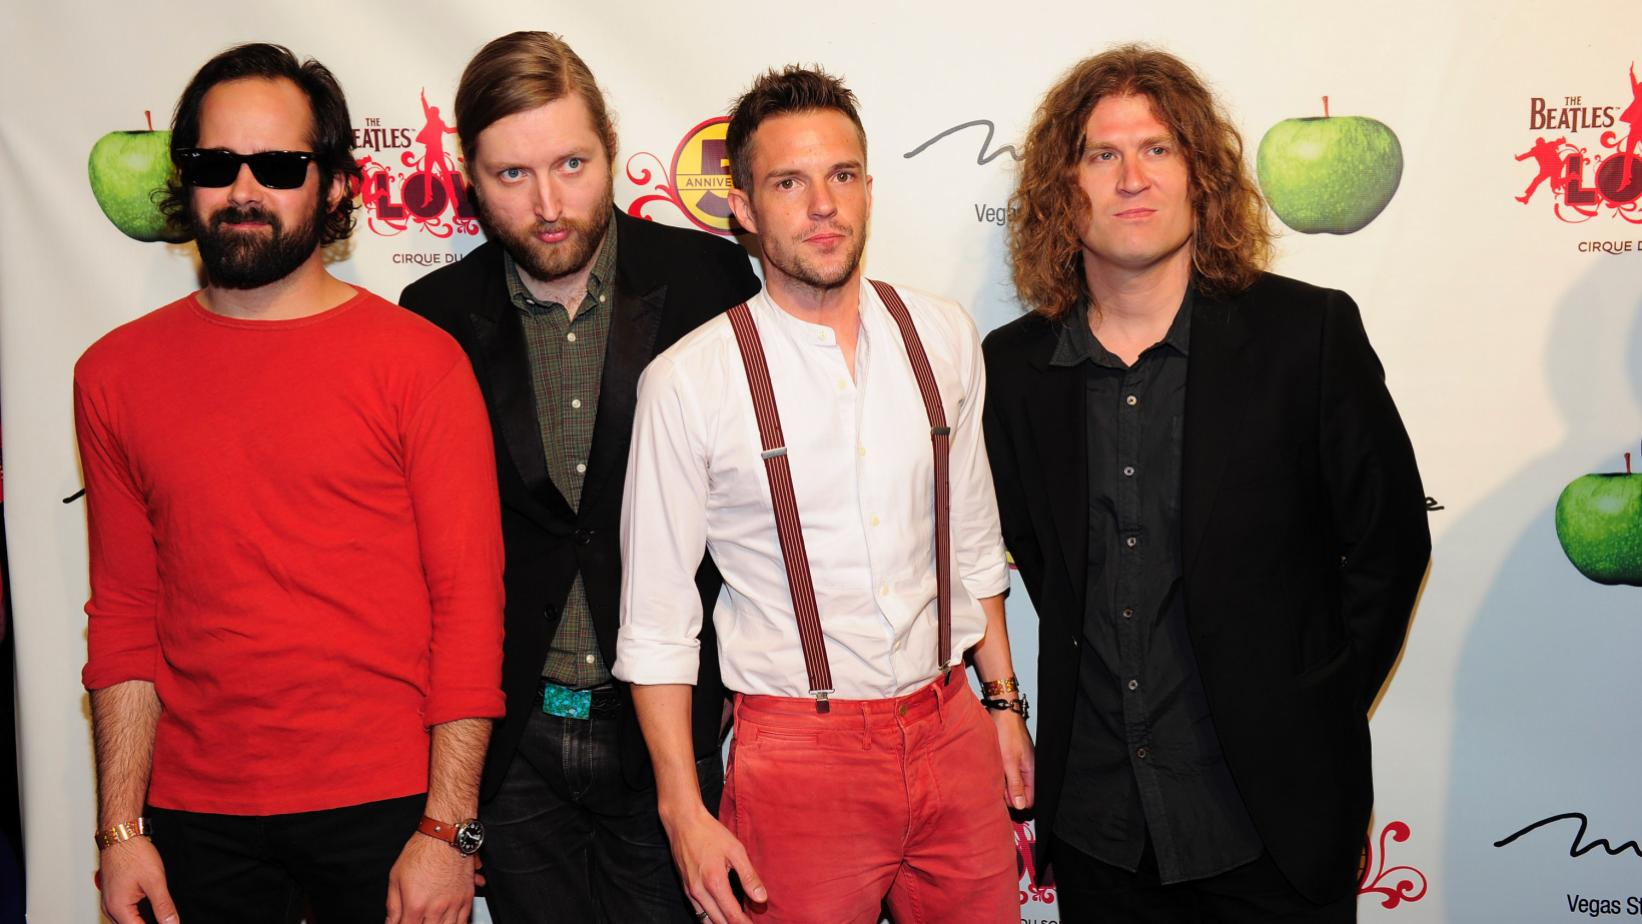 The Killers, 2011